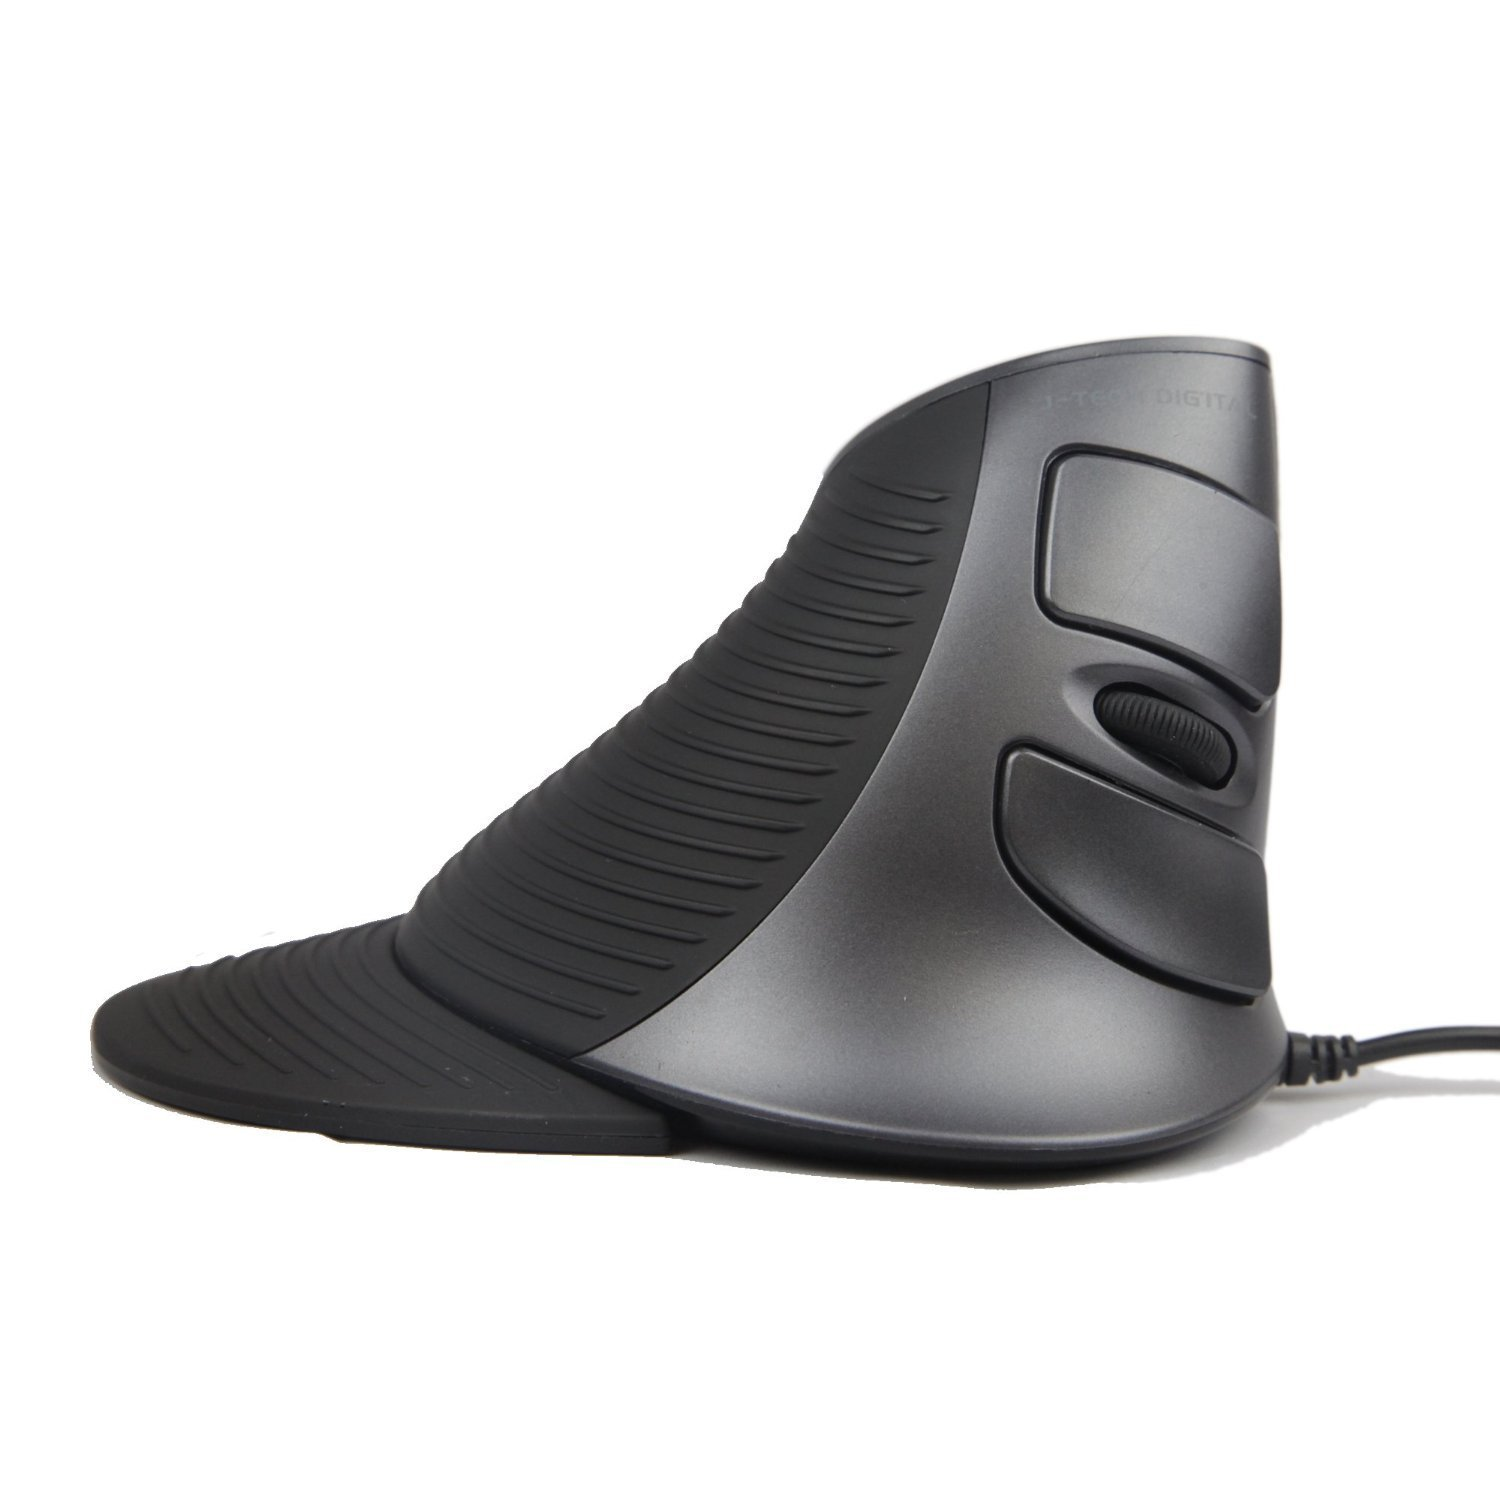 J-Tech Digital Wired Vertical Mouse